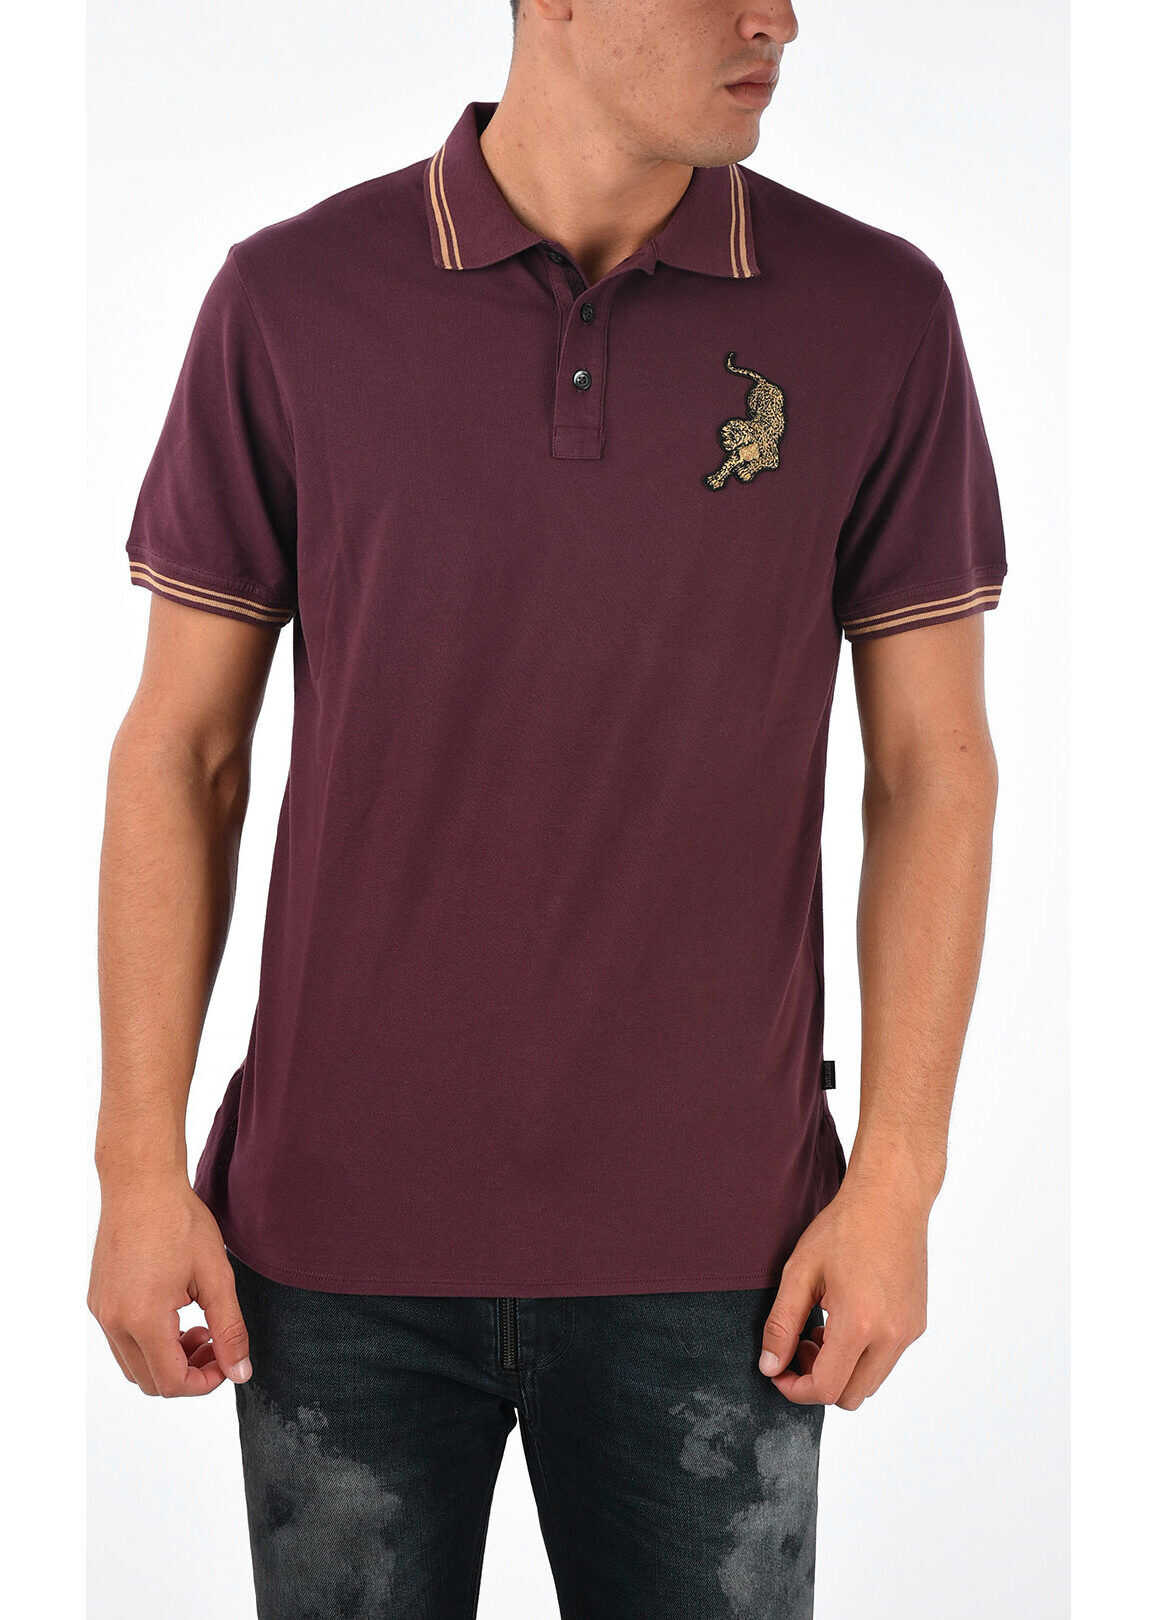 Just Cavalli Polo with Embroidery BURGUNDY